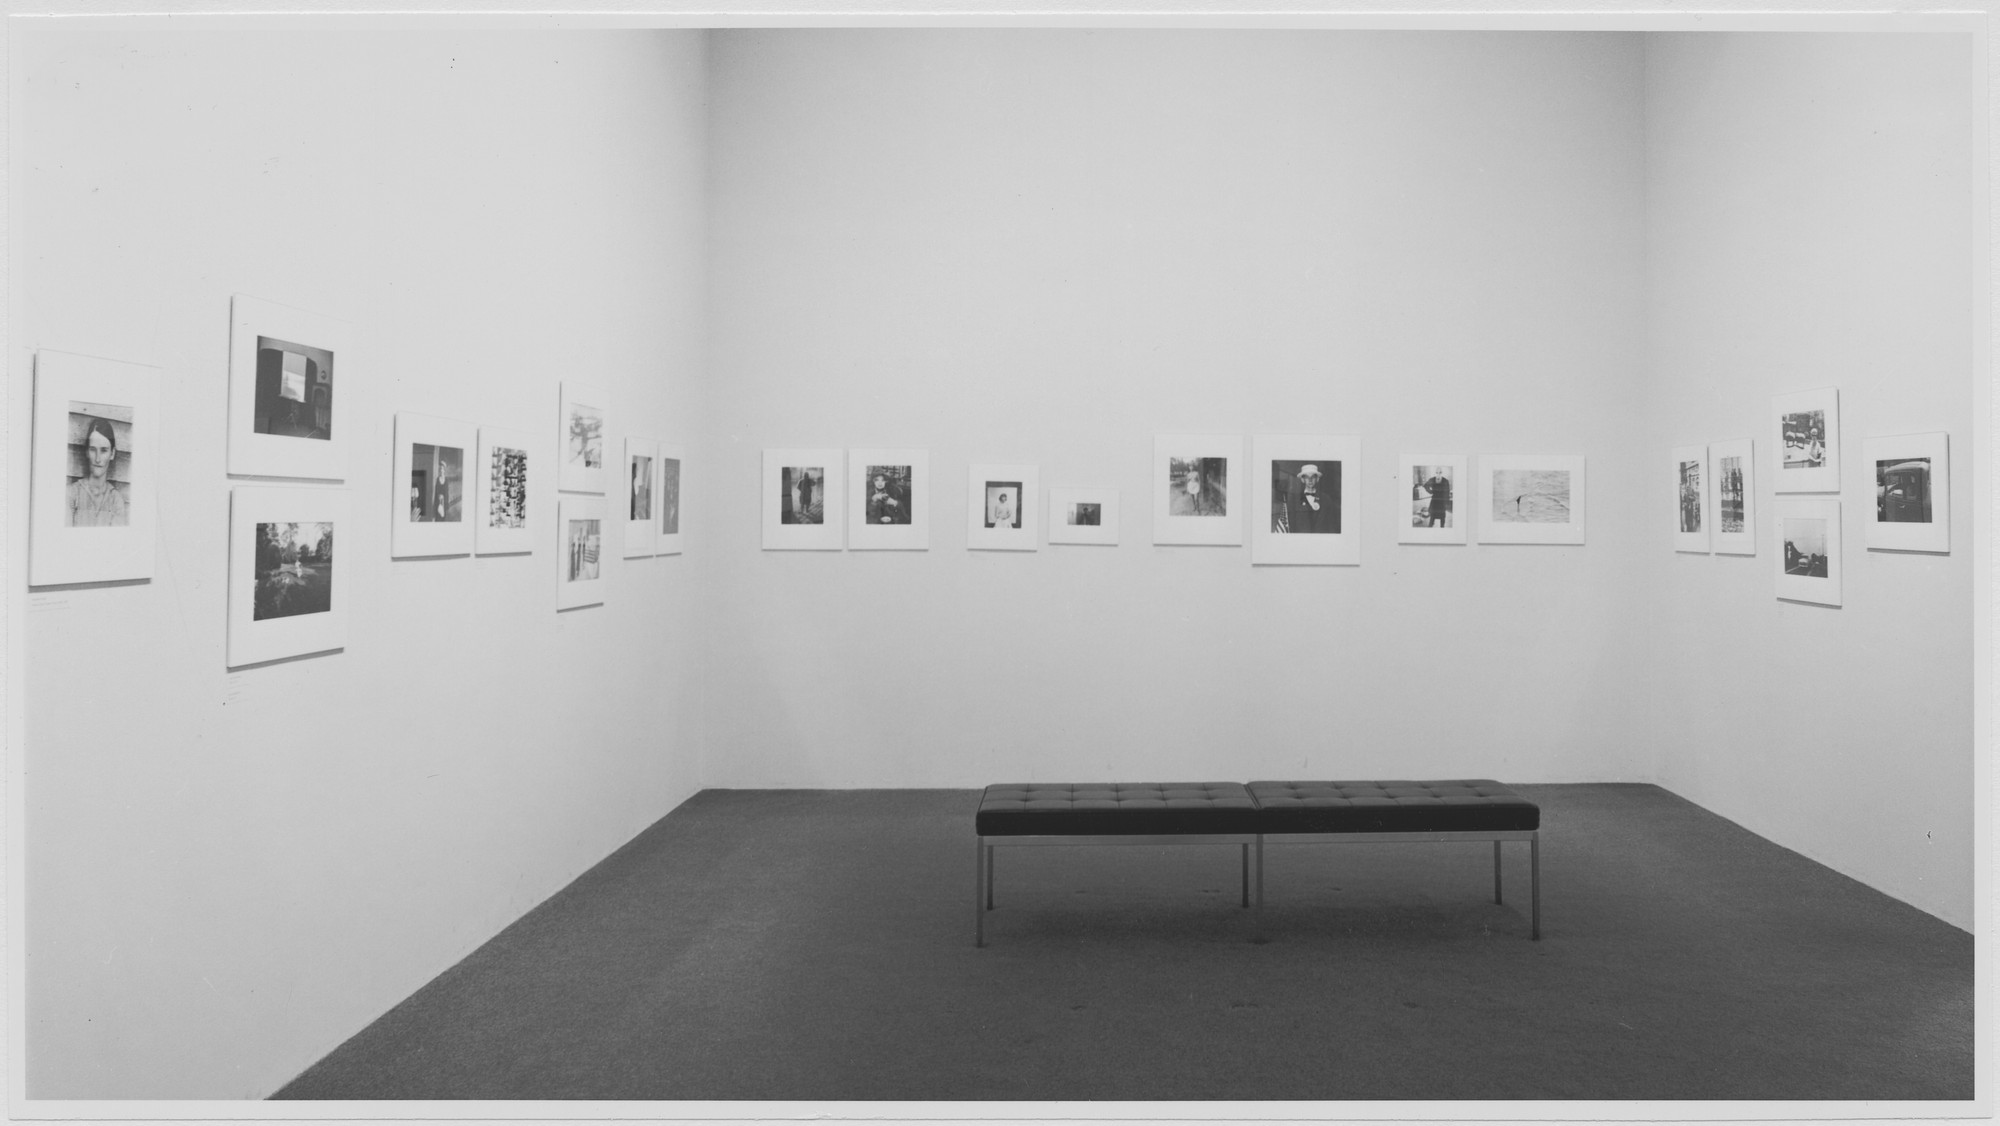 "Installation view of the exhibition, ""Ben Schultz Memorial Exhibition."" February 9, 1968–March 31, 1968. Photographic Archive. The Museum of Modern Art Archives, New York. IN851.1"